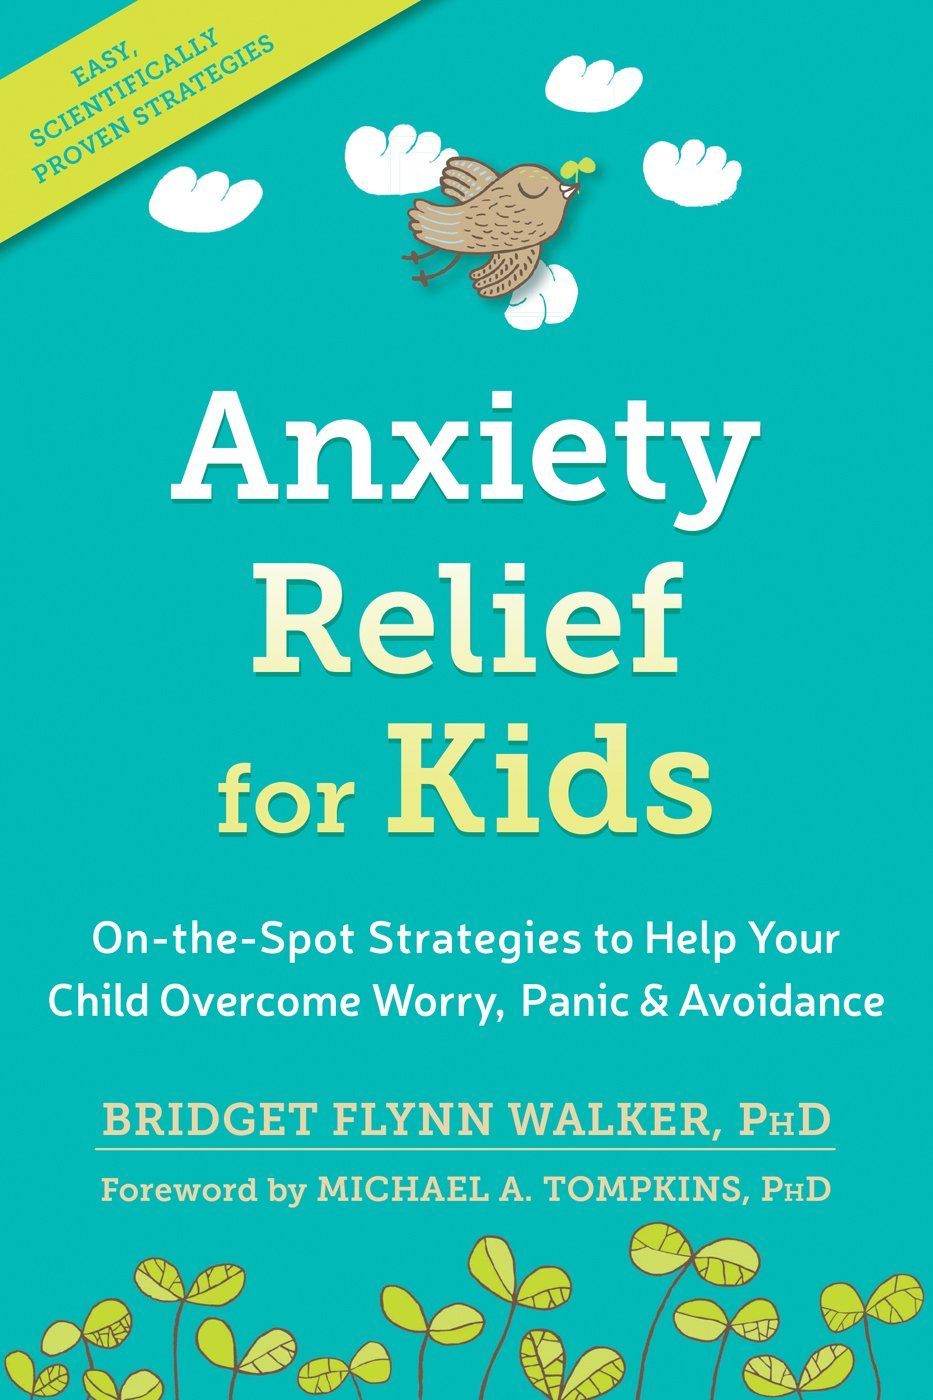 Anxiety And Homework Helping Your Child >> Anxiety Relief For Kids On The Spot Strategies To Help Your Child